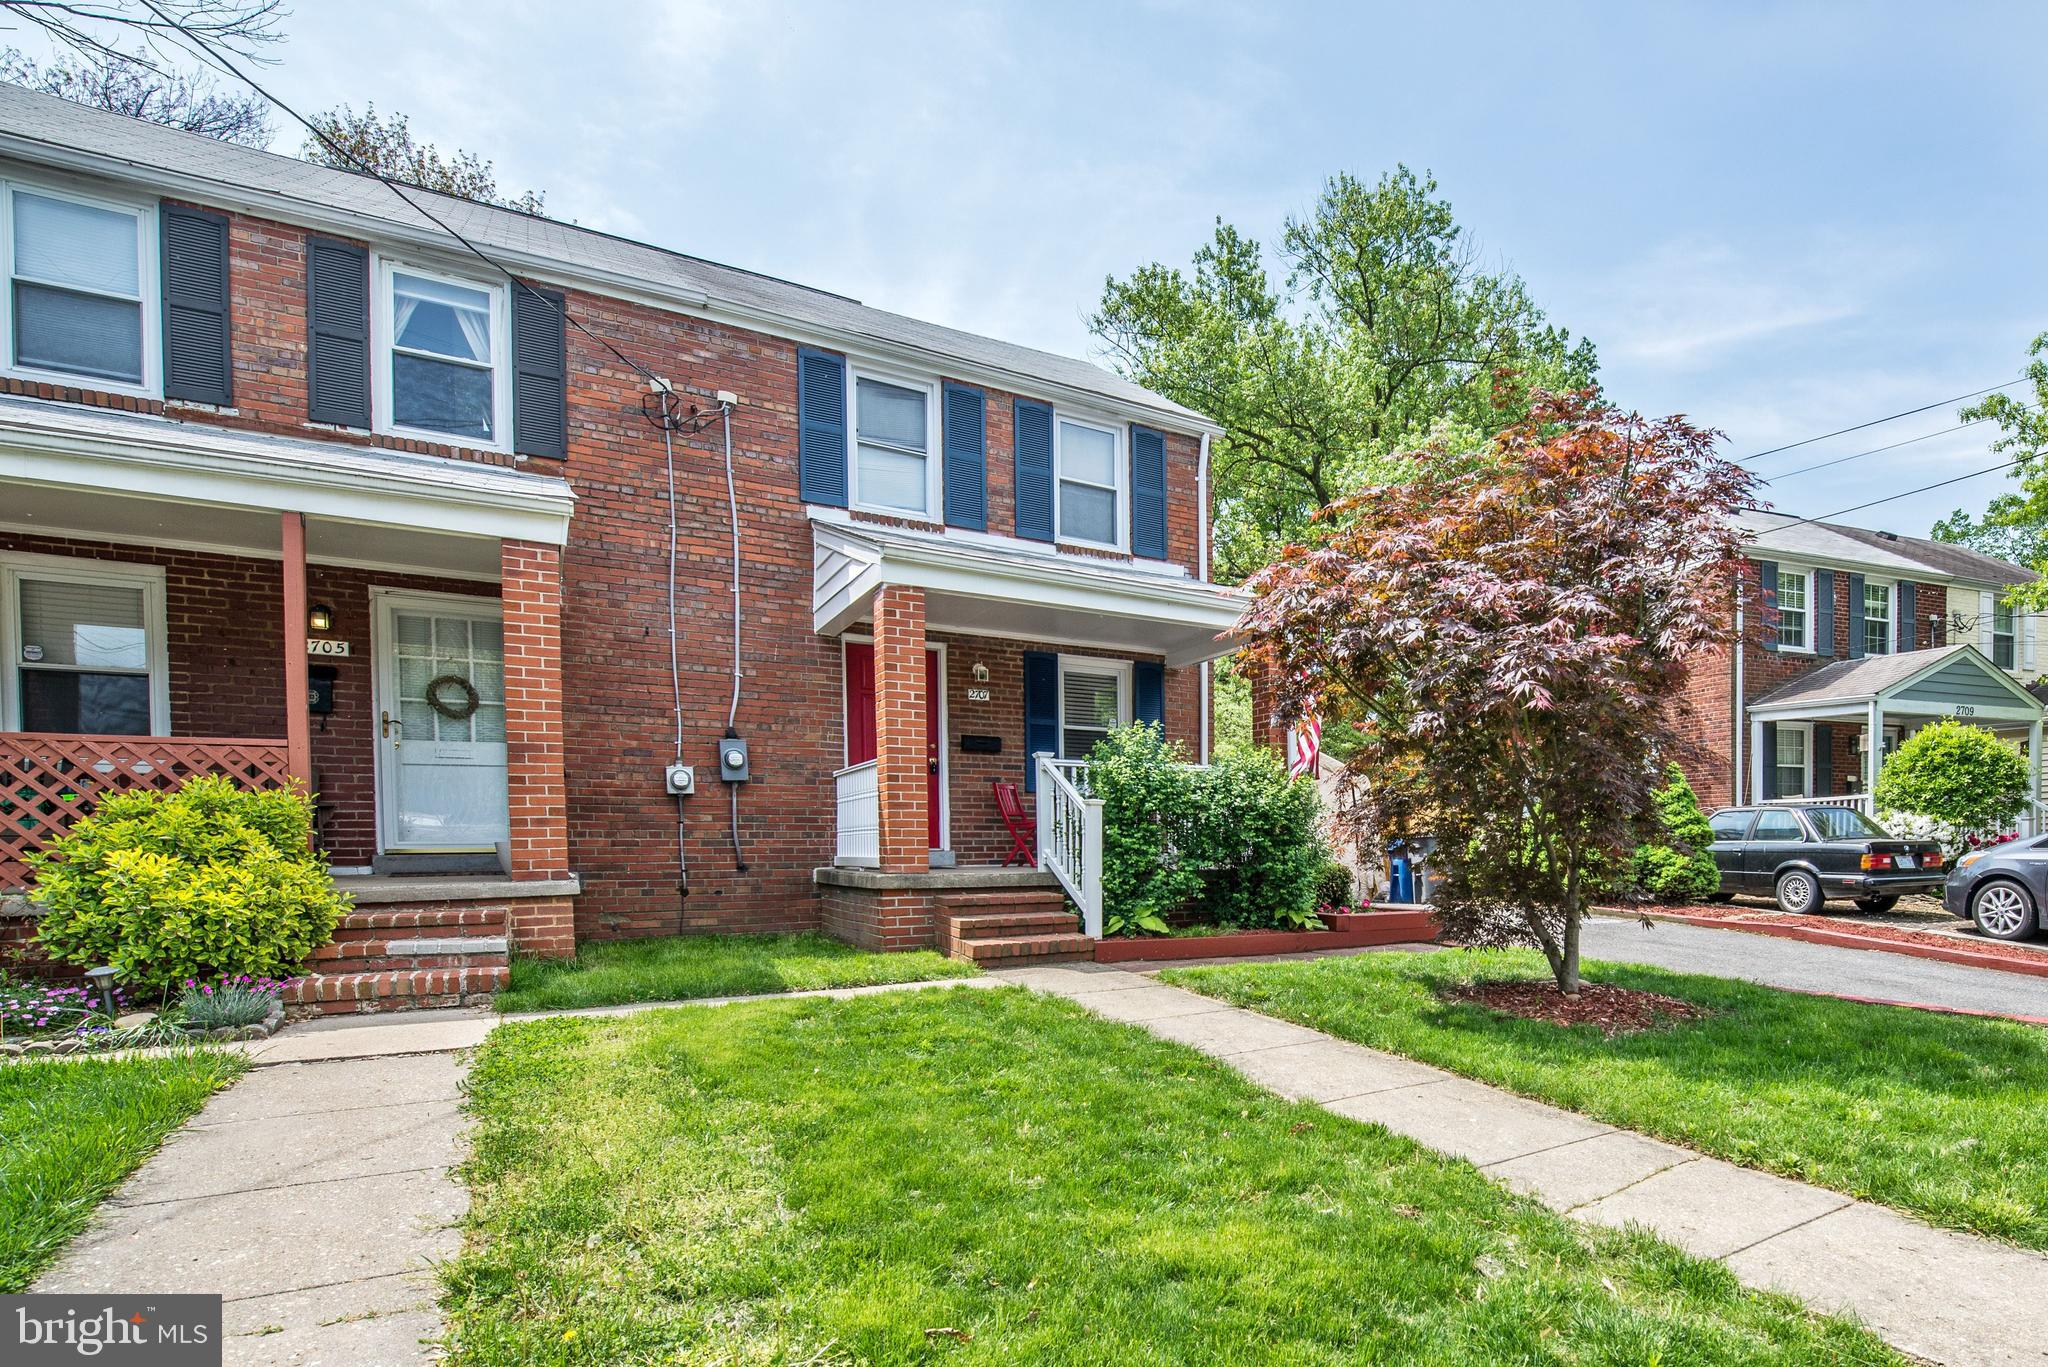 Welcome to Jefferson Manor: Well maintained and updated.  Front porch with a seating area. Living and separate dining room with hardwood floors.   Kitchen with granite counter tops and ceramic tile backsplash.  3 bedrooms and 2 full baths.  Fully finished walkout basement. Large backyard with a deck with stairs to the fully fenced backyard.  Near Metro and major commuting routes.  Shopping nearby.  Off street parking spaces in the driveway.  Enjoy the weather on the deck.  A large flat back yard that is fully fenced.